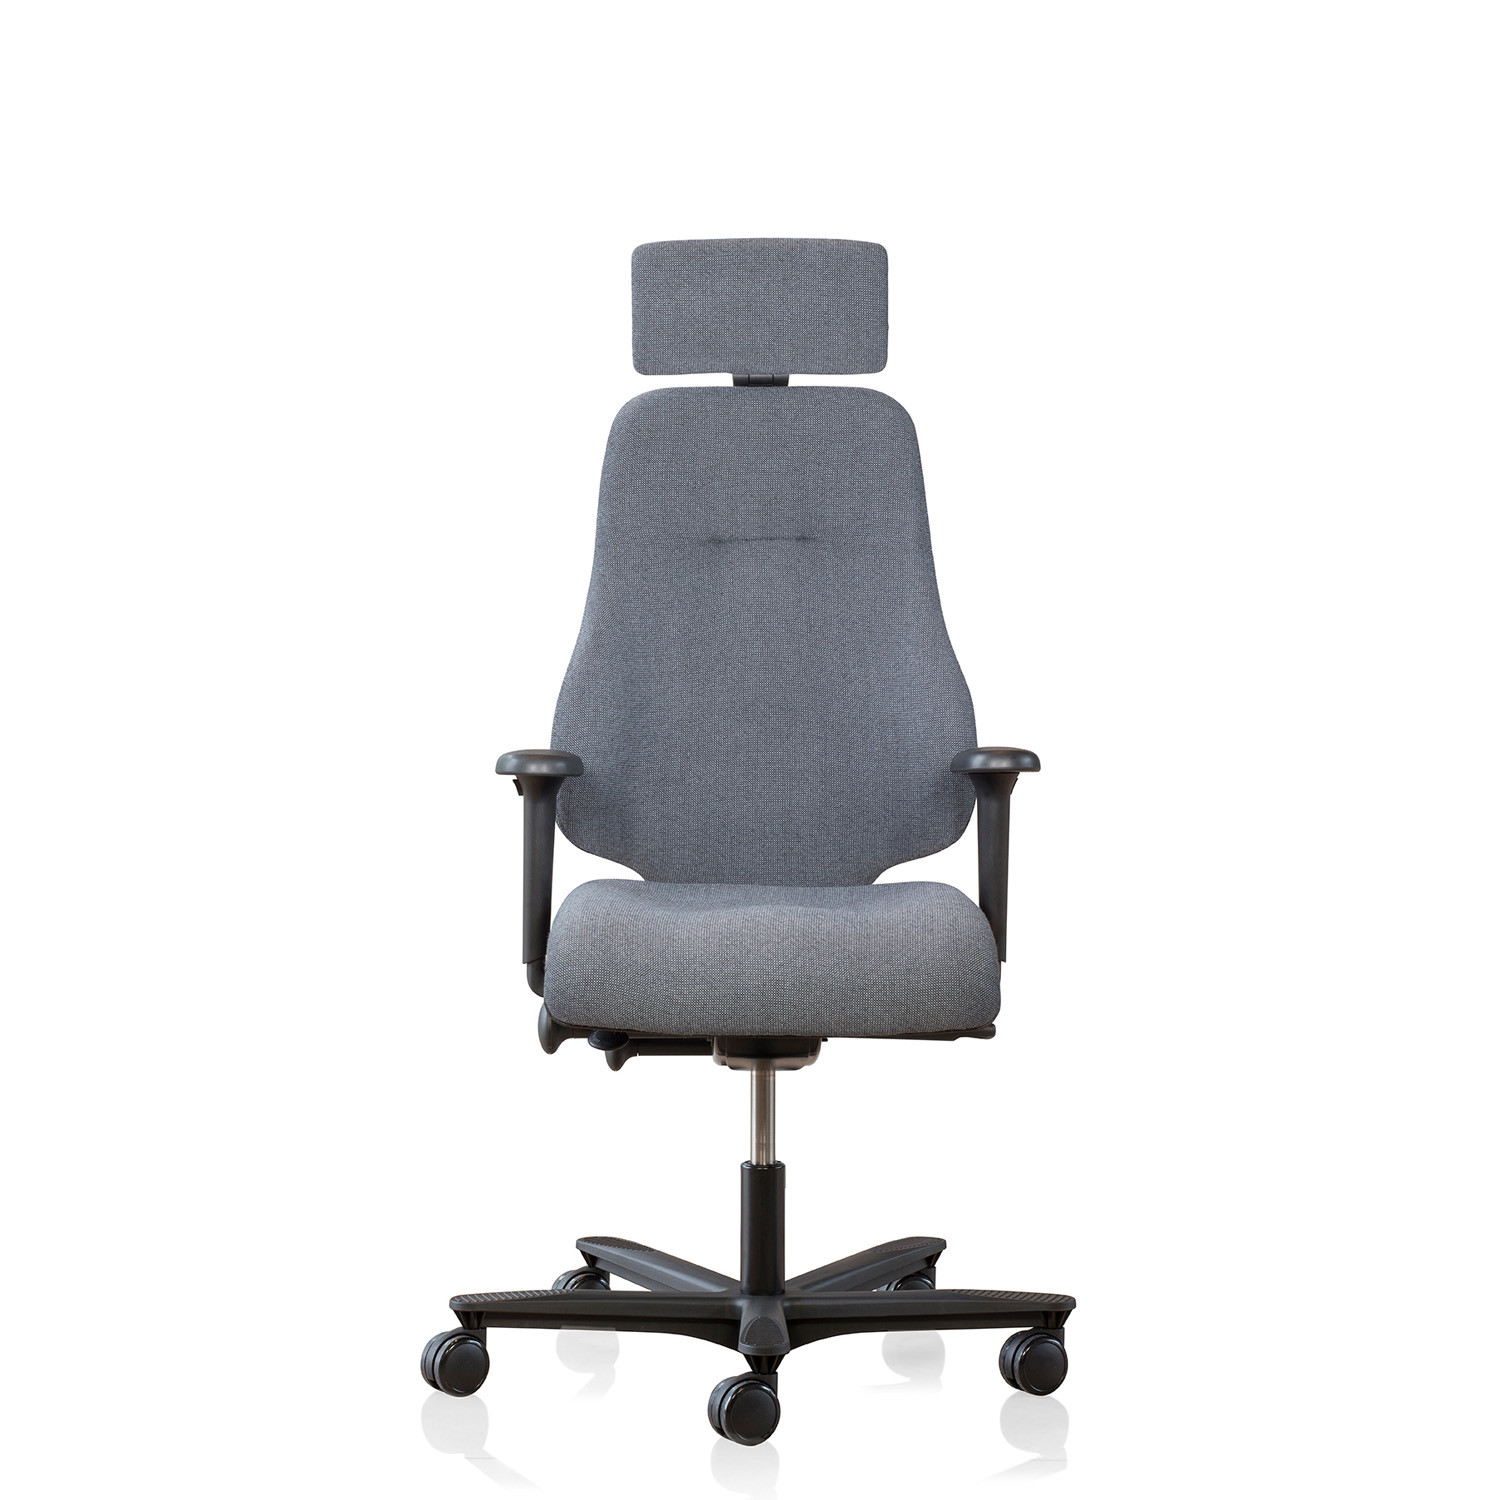 Orangebox Spira+ Ergonomic Office Chair